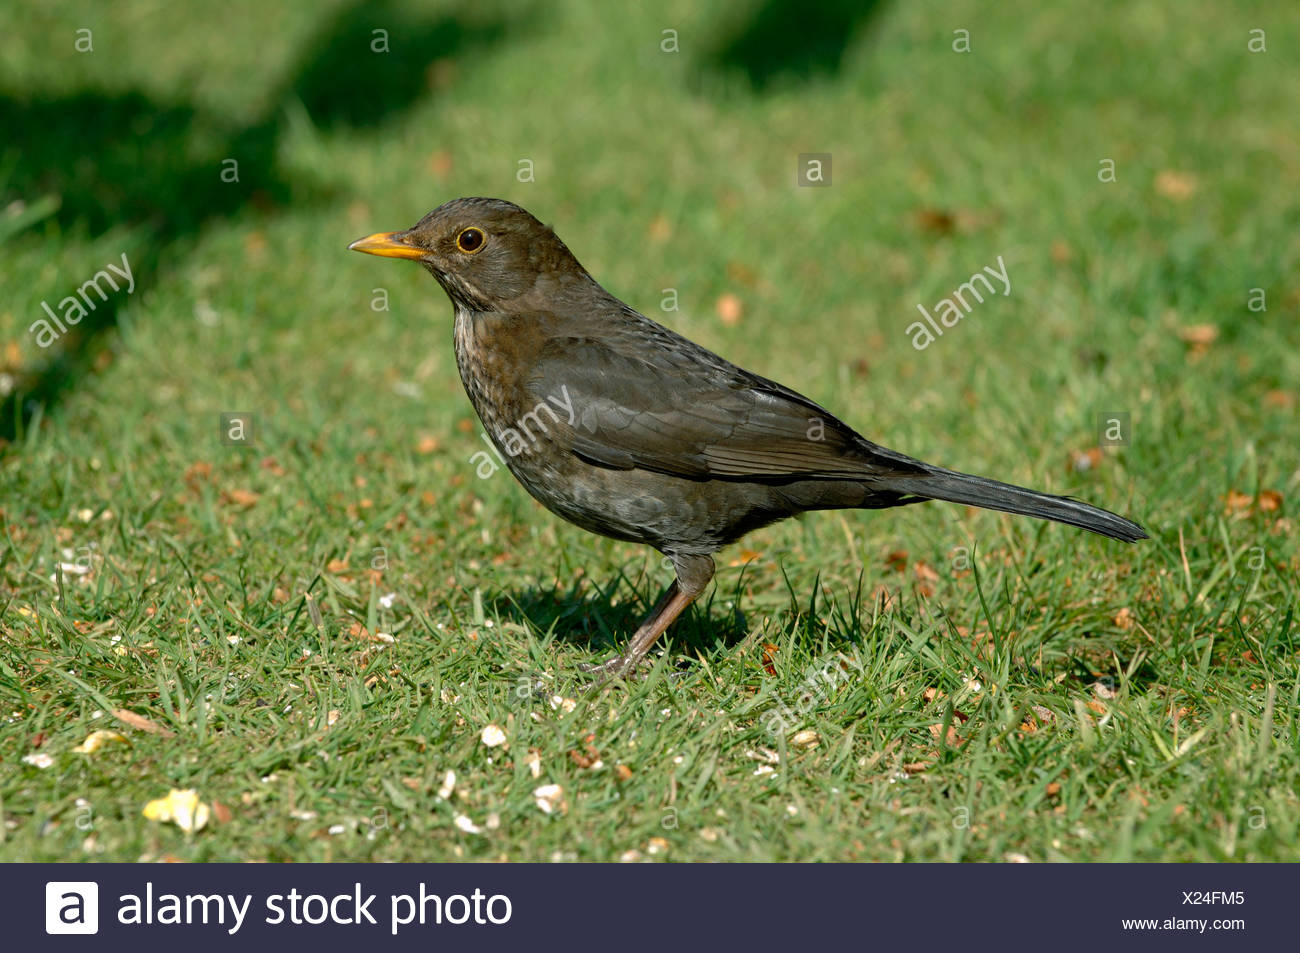 Female hen blackbird with birdfood on a garden lawn in spring - Stock Image